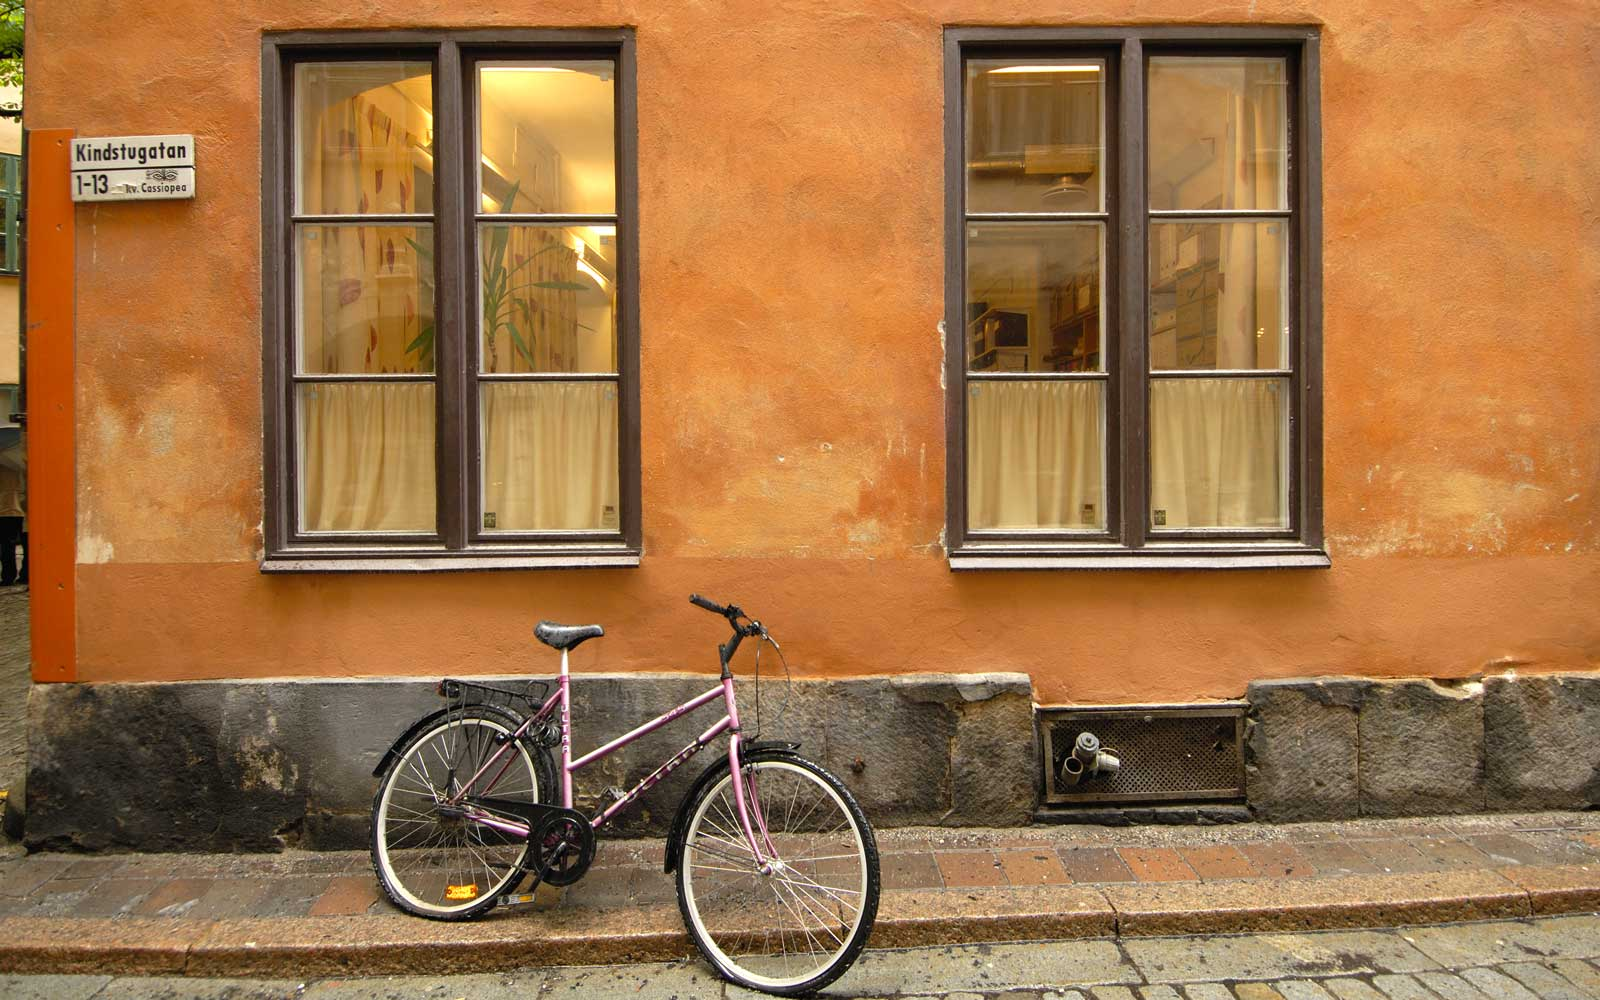 Bicycle on Kindstugatan in Gamla Stan, Stockholm